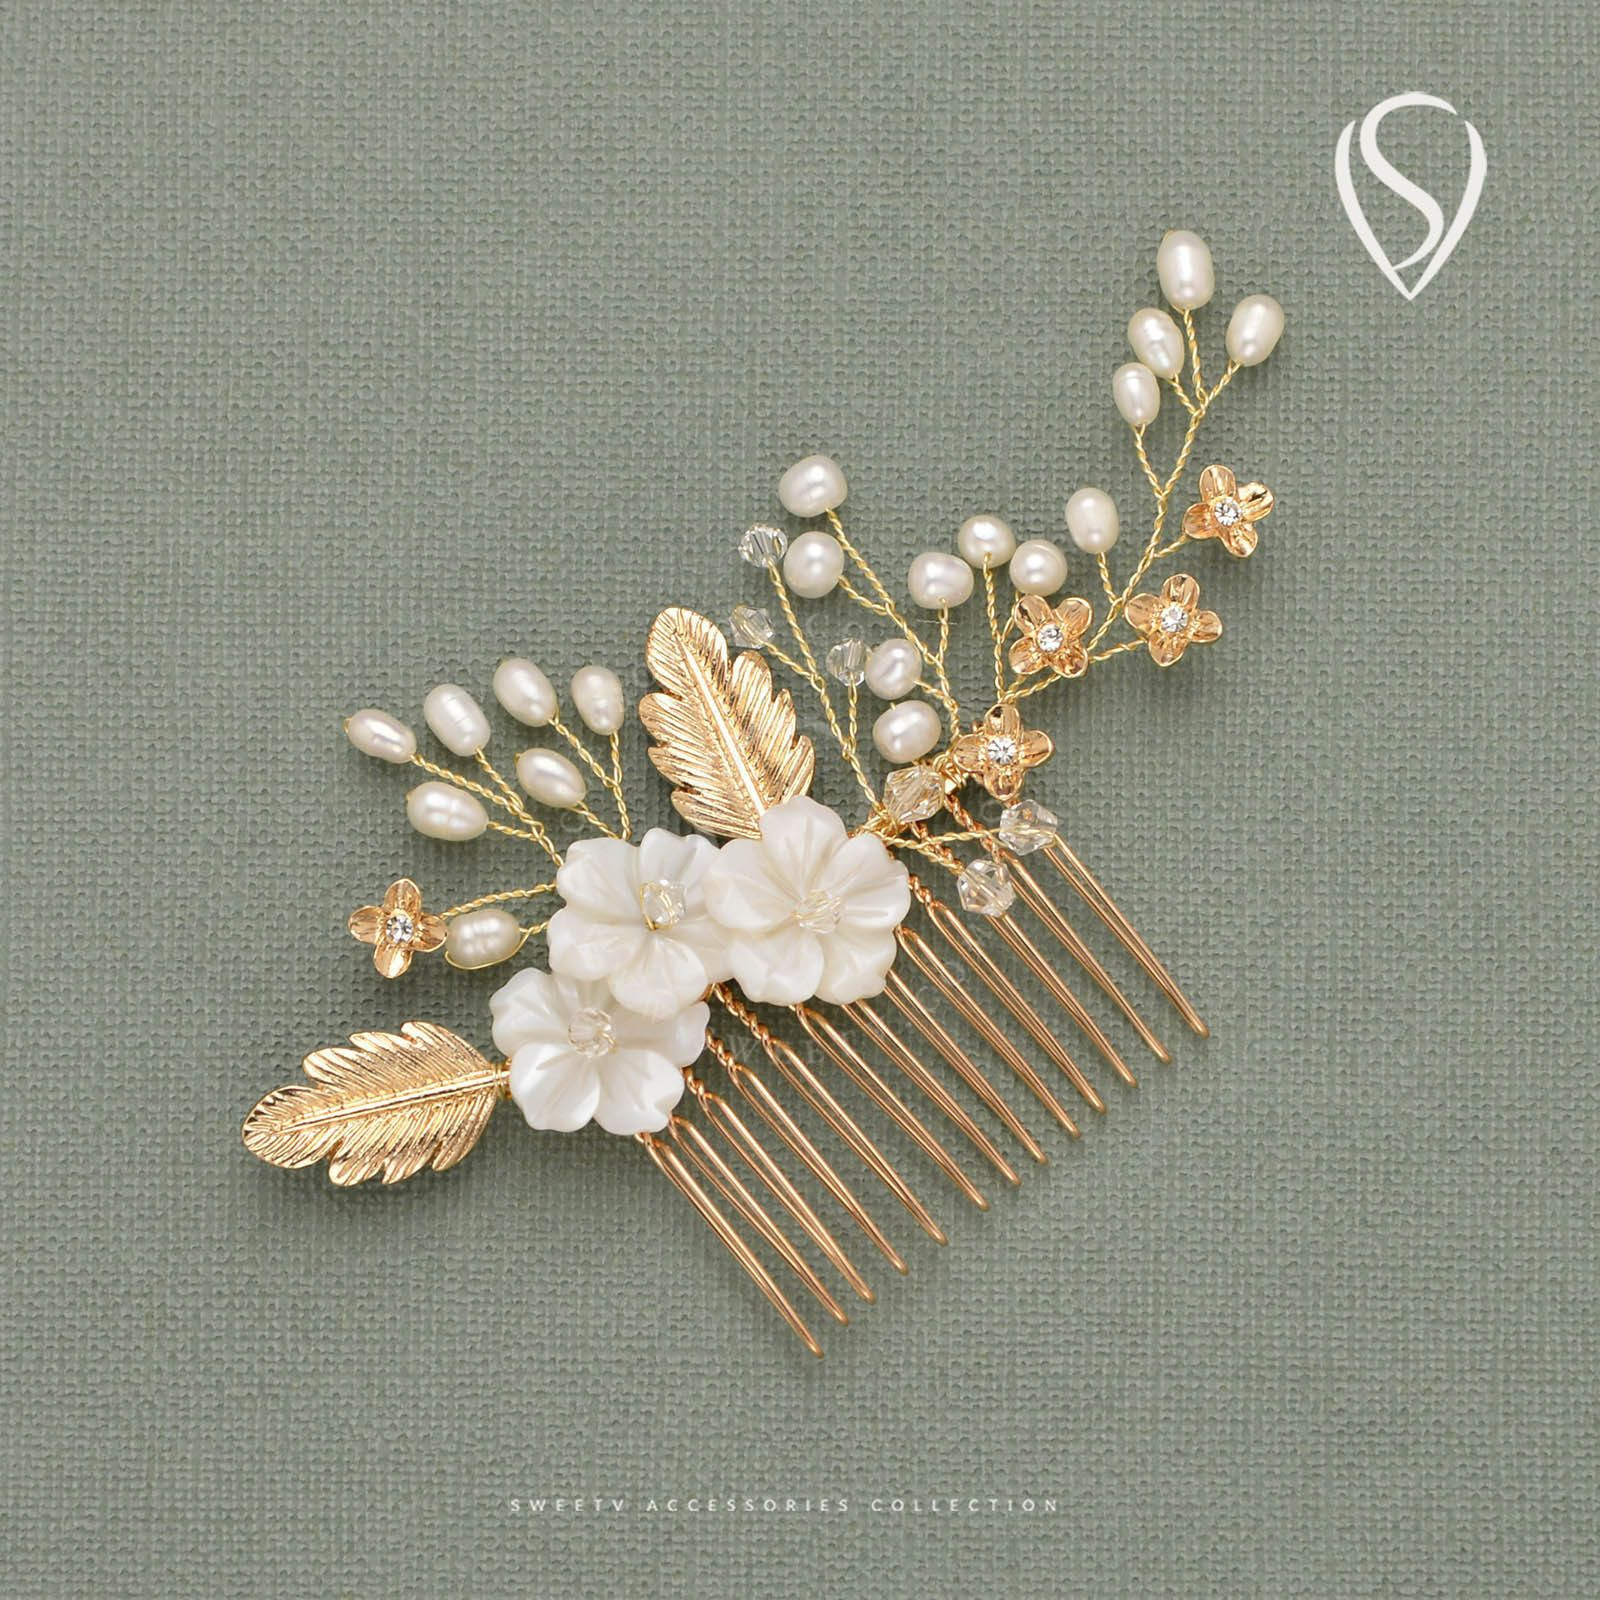 Wedding accessories pearls flowers pearls - Gold Romantic Bridal Hair Comb Clip Pearl Flower Hairpin Women Hair Accessories